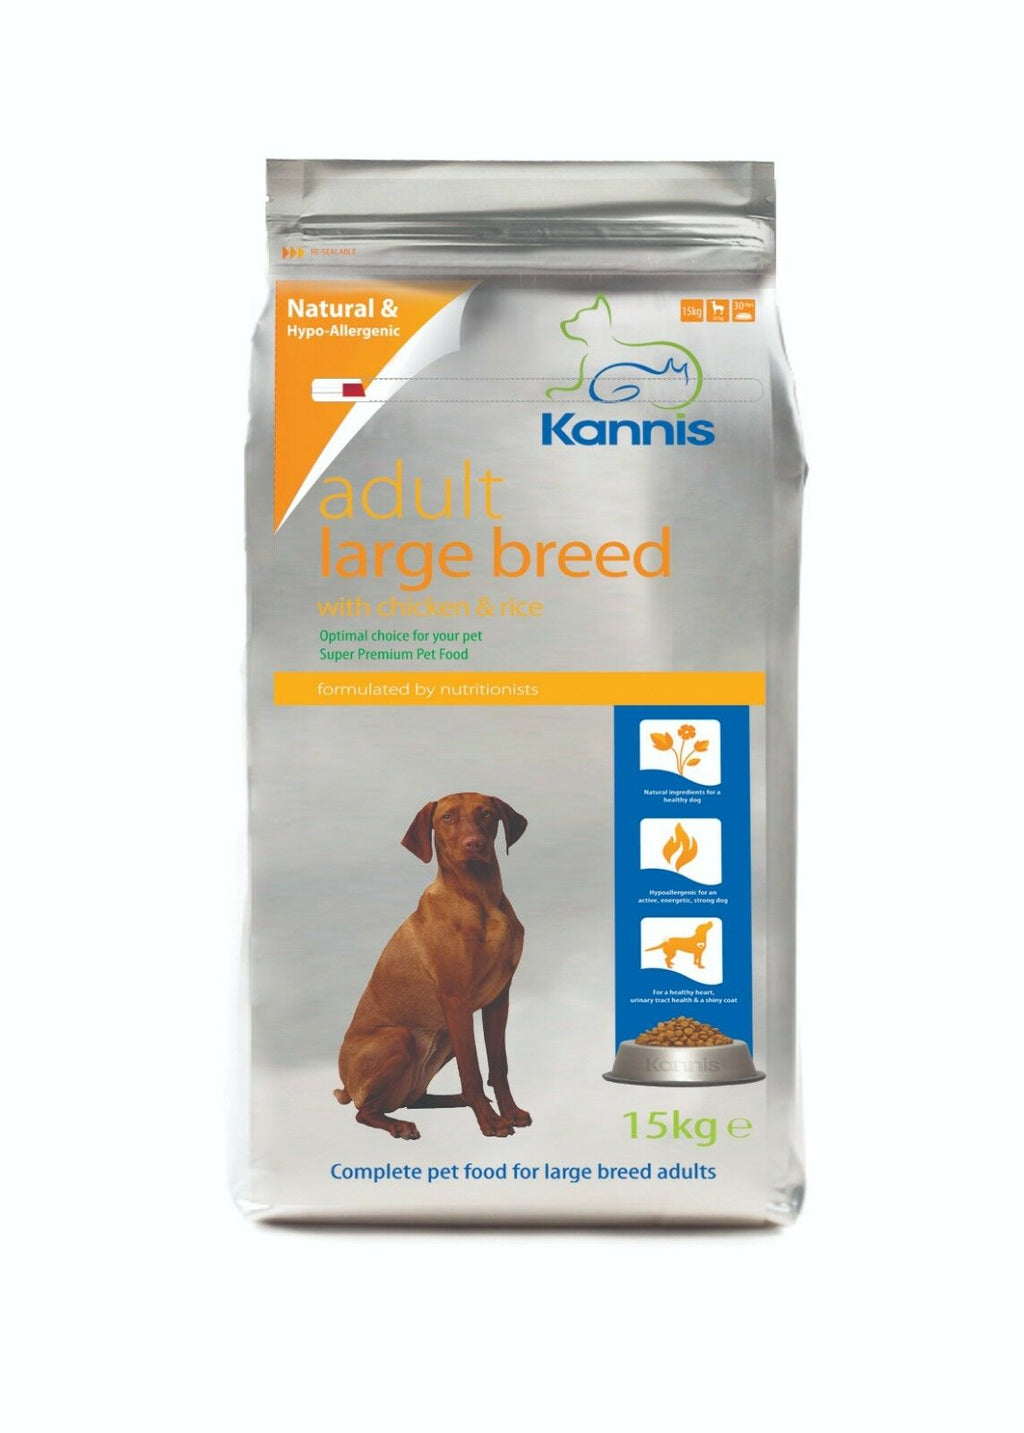 Kannis Adult Large Breed Dry Dog Food - Chicken 15 Kg